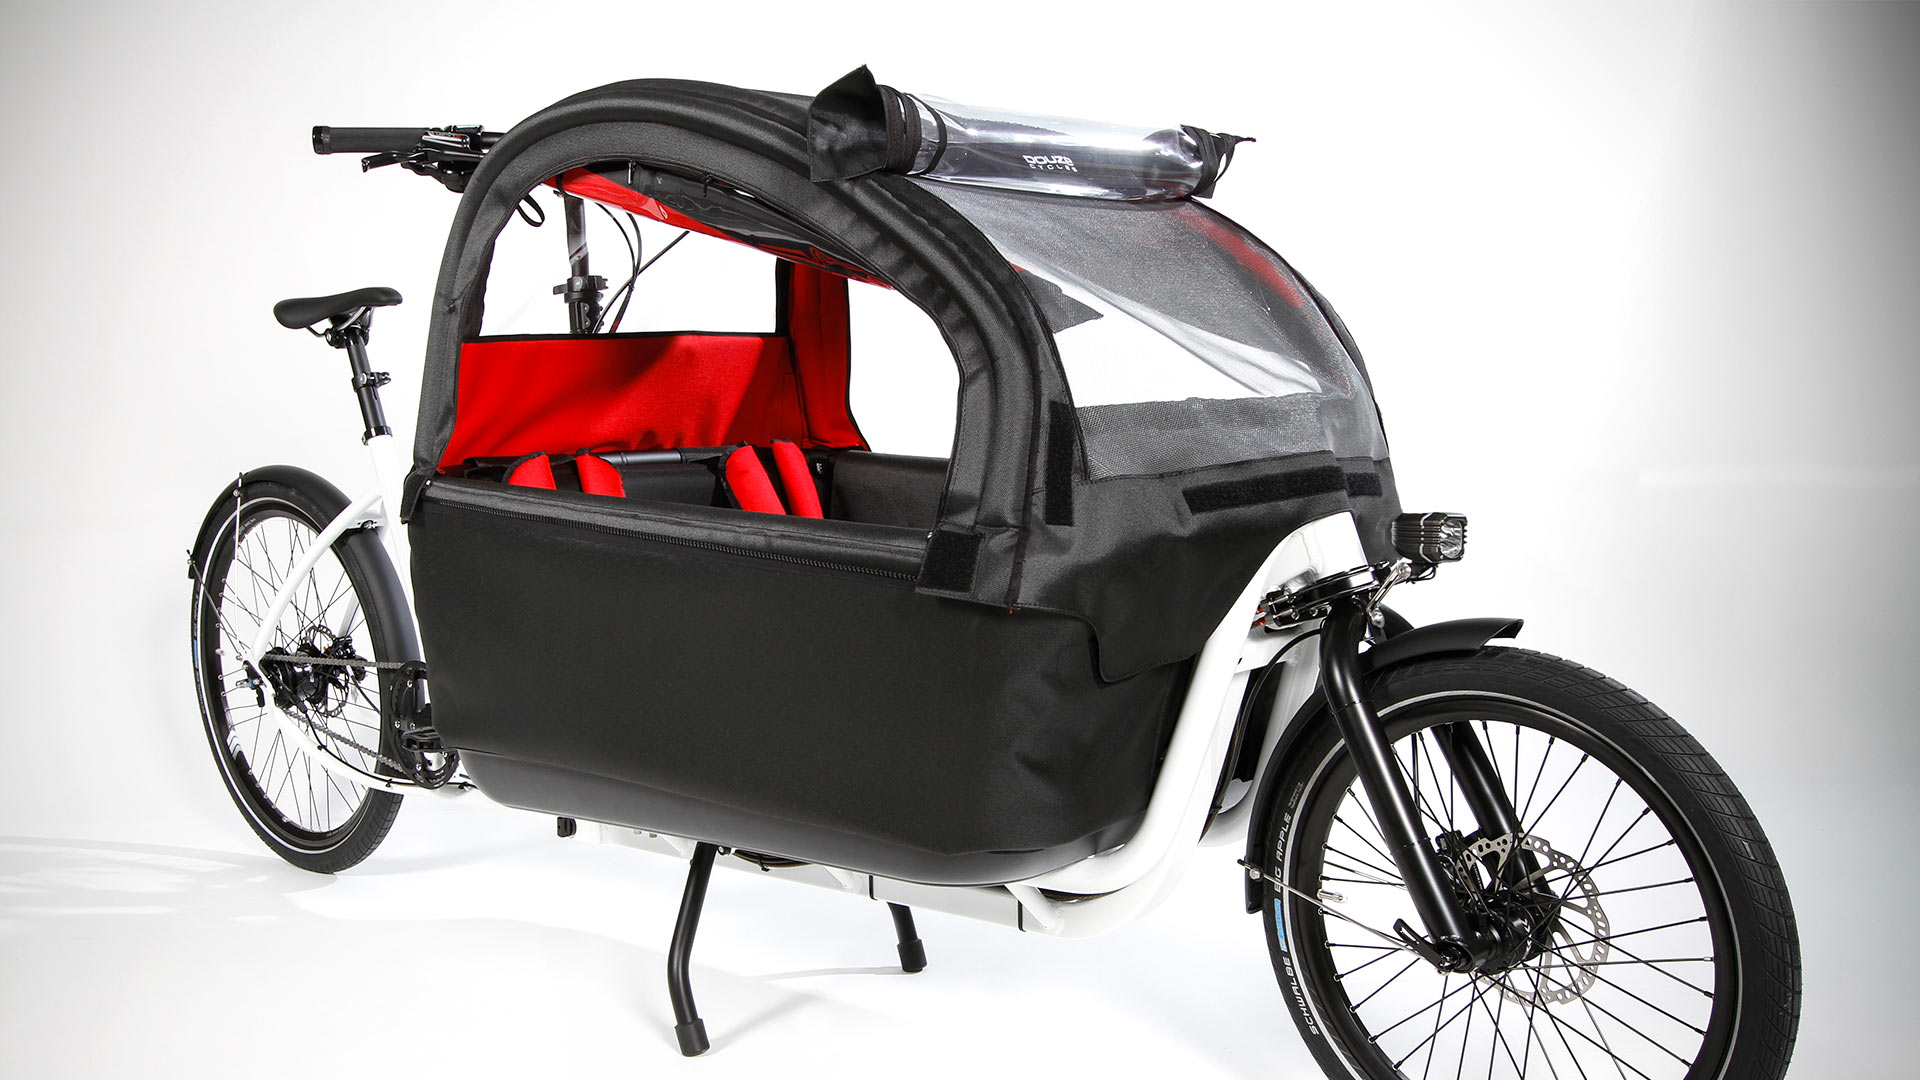 Le Douze Cycle en version blanche, extra long, avec sa canopy. Source : site Douze-Cycle.com